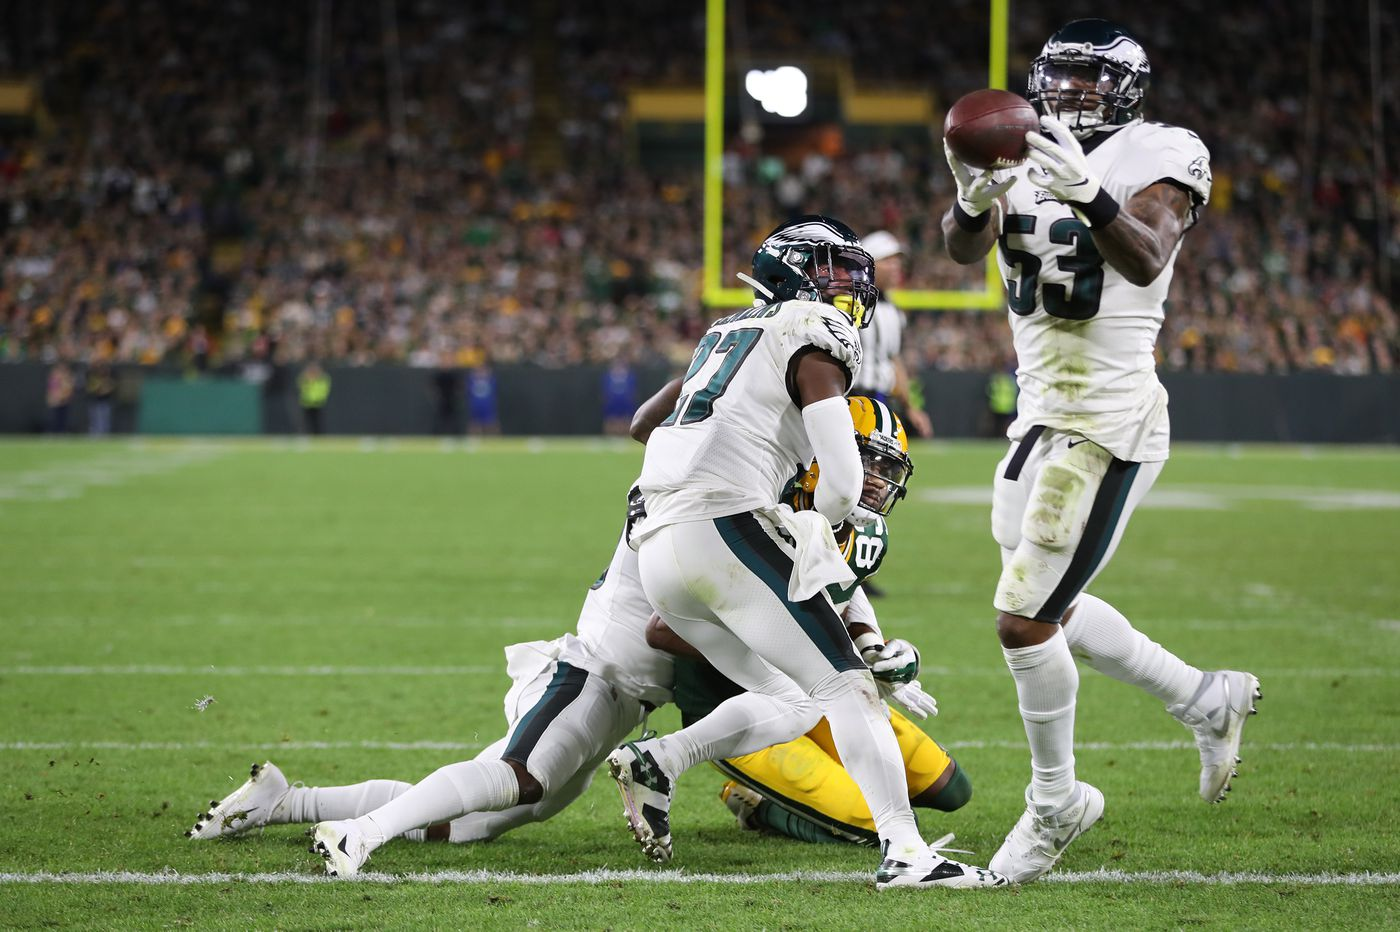 Eagles outlast Green Bay Packers as Craig James' deflection, Nigel Bradham's interception seal a huge victory